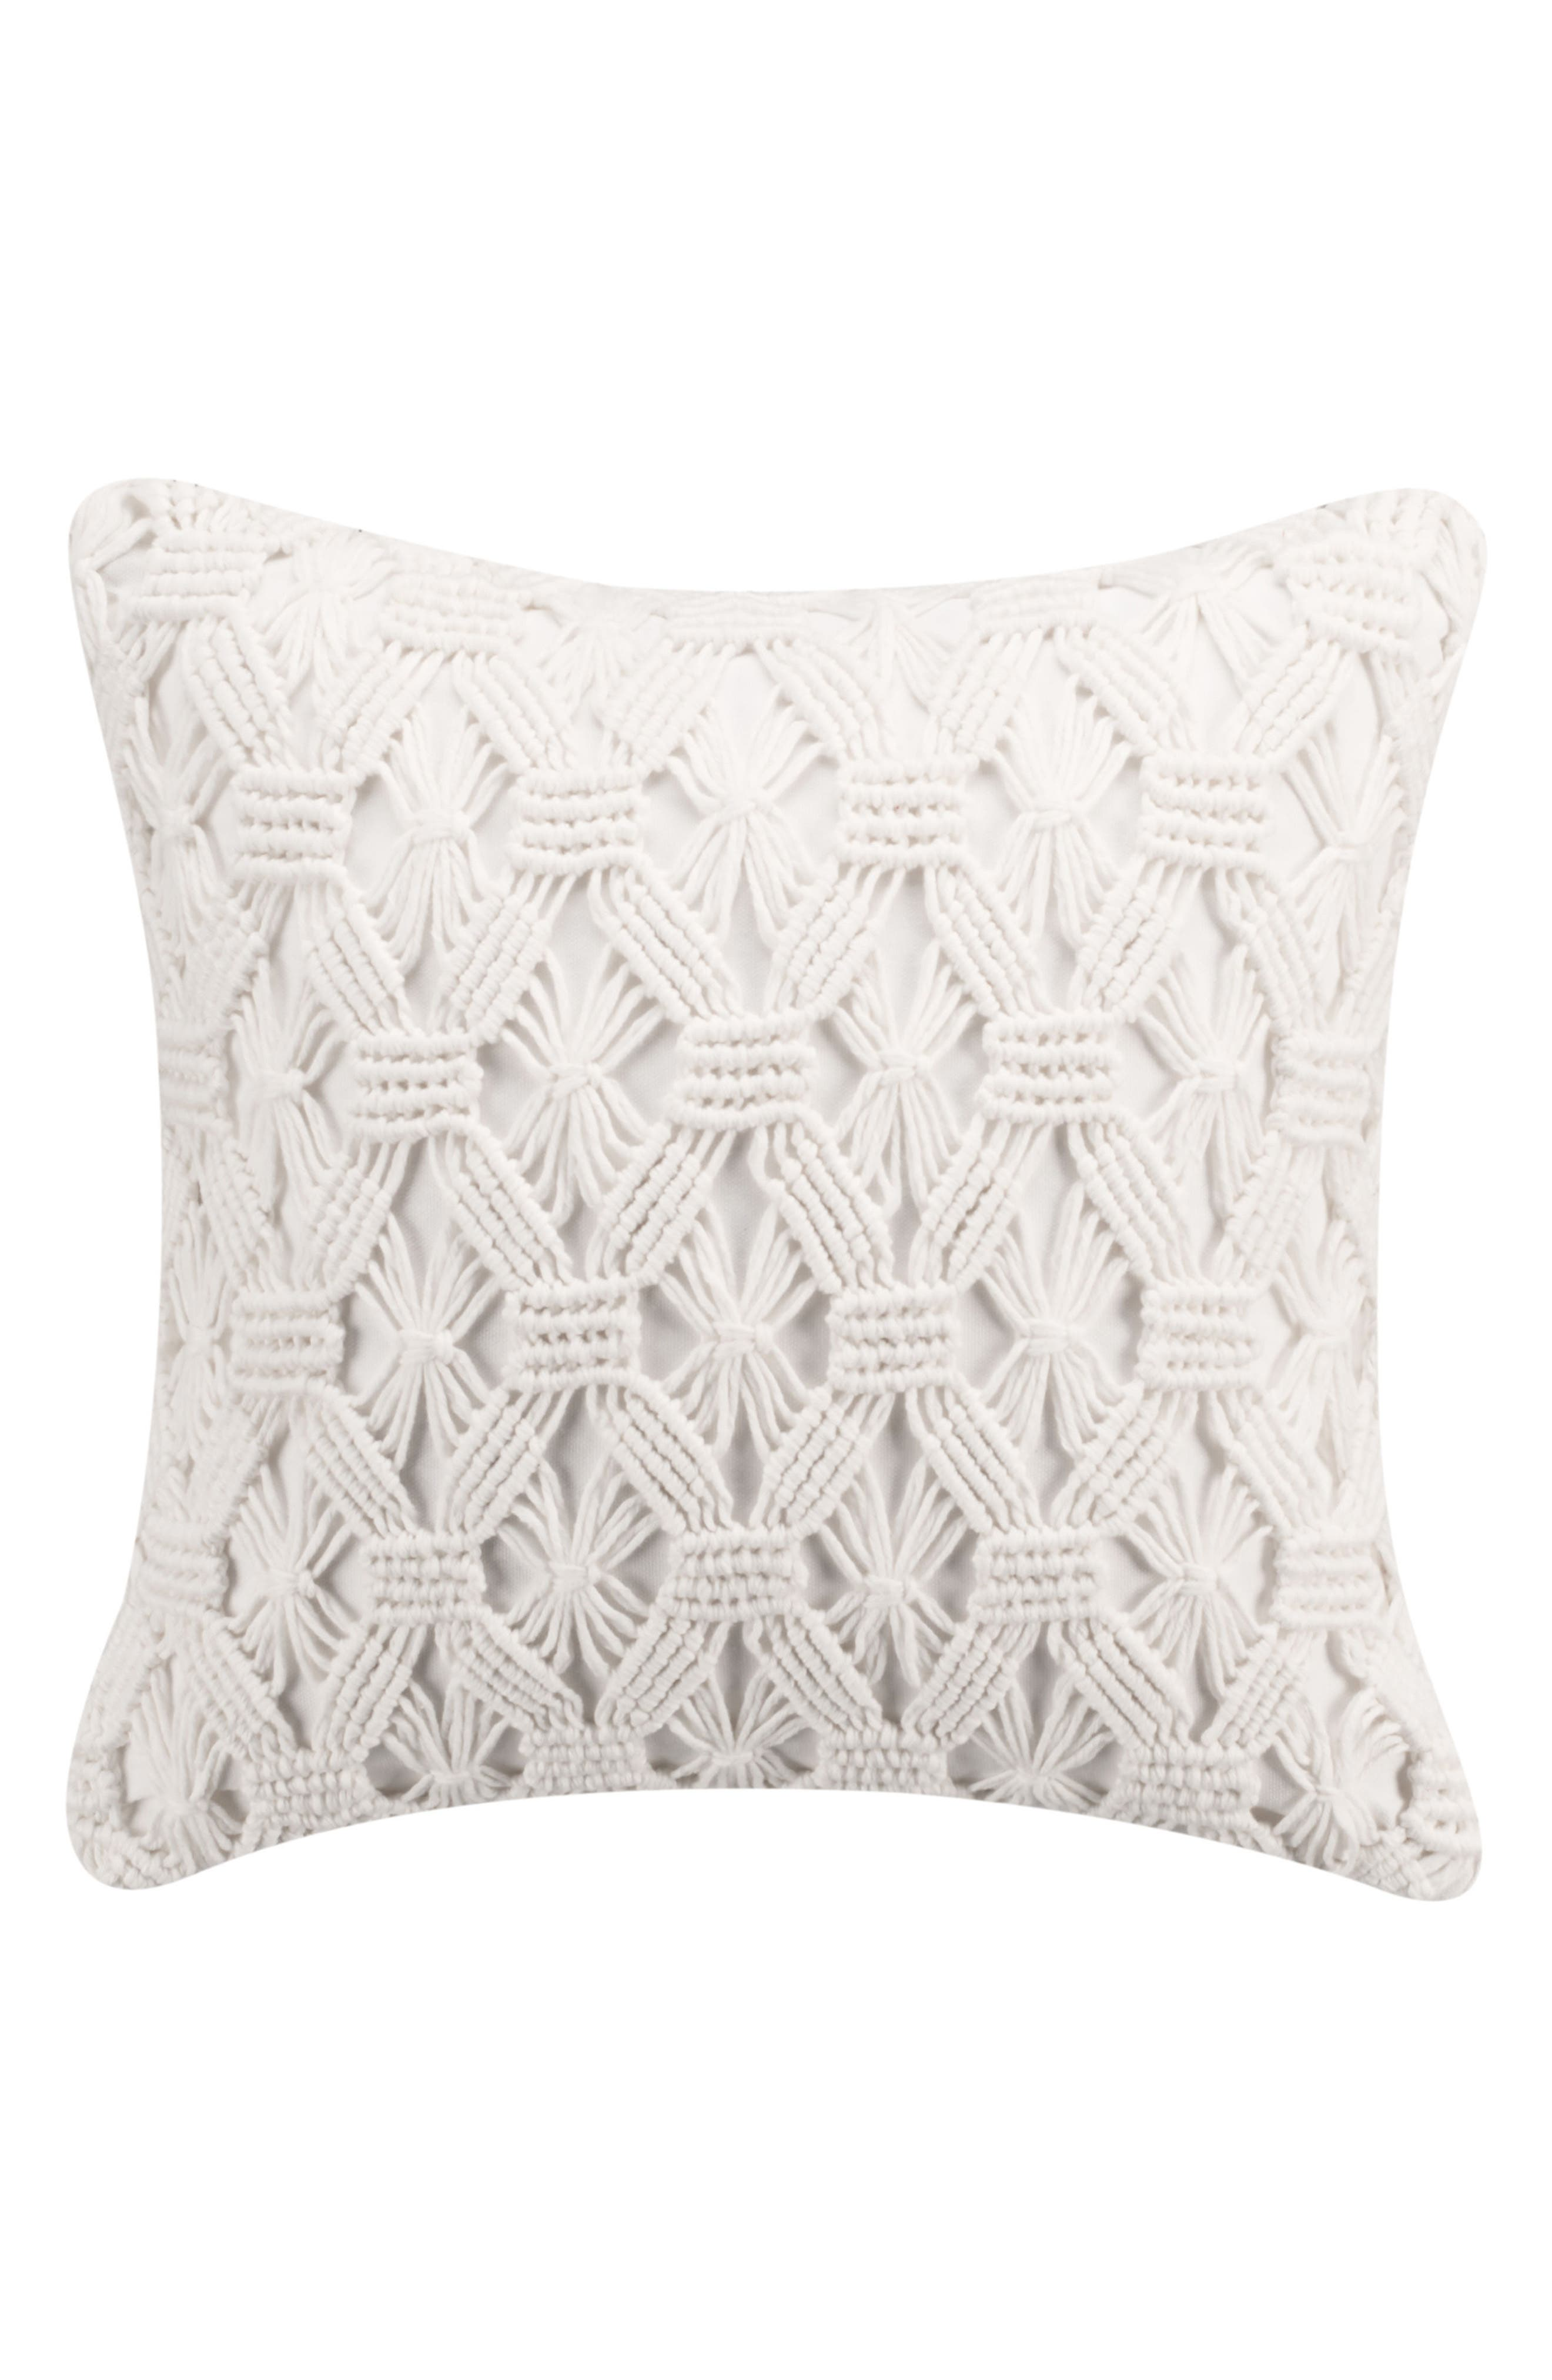 Main Image - cupcakes & cashmere Mosaic Tile Hand Knotted Accent Pillow